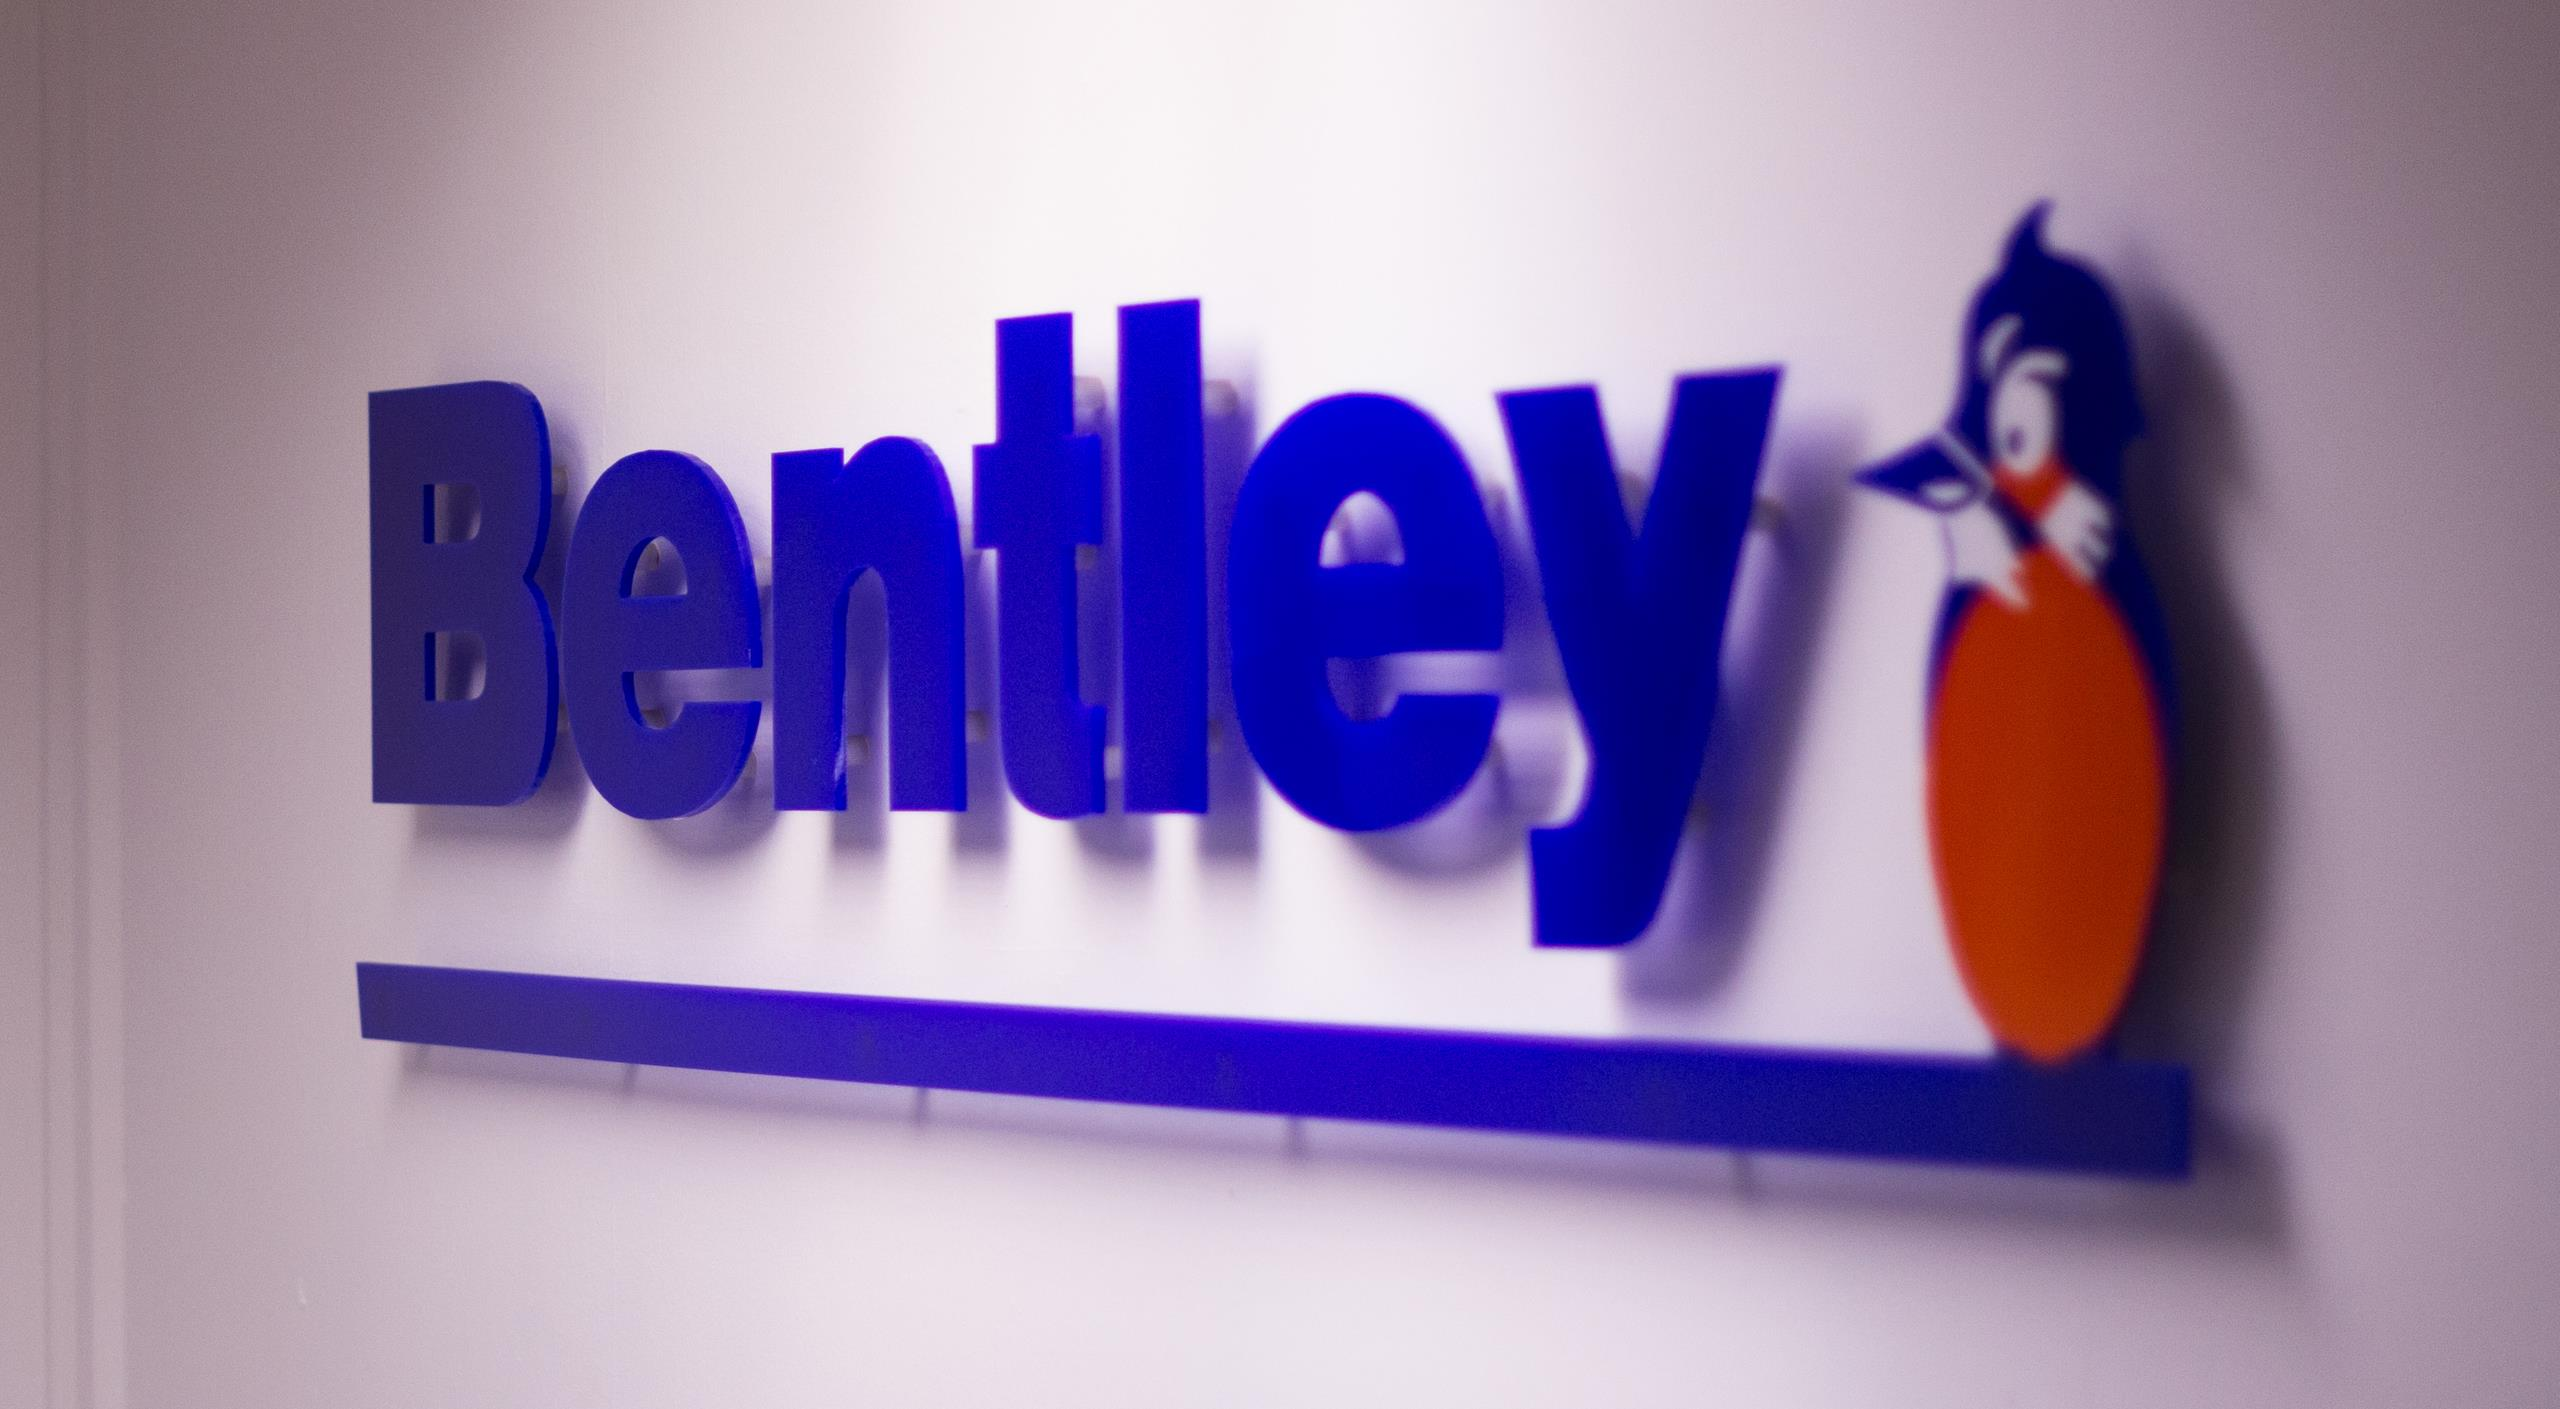 JN Bentley operates in a spirit of openness, honesty and accountability, with a zero tolerance stance towards bribery and corruption.